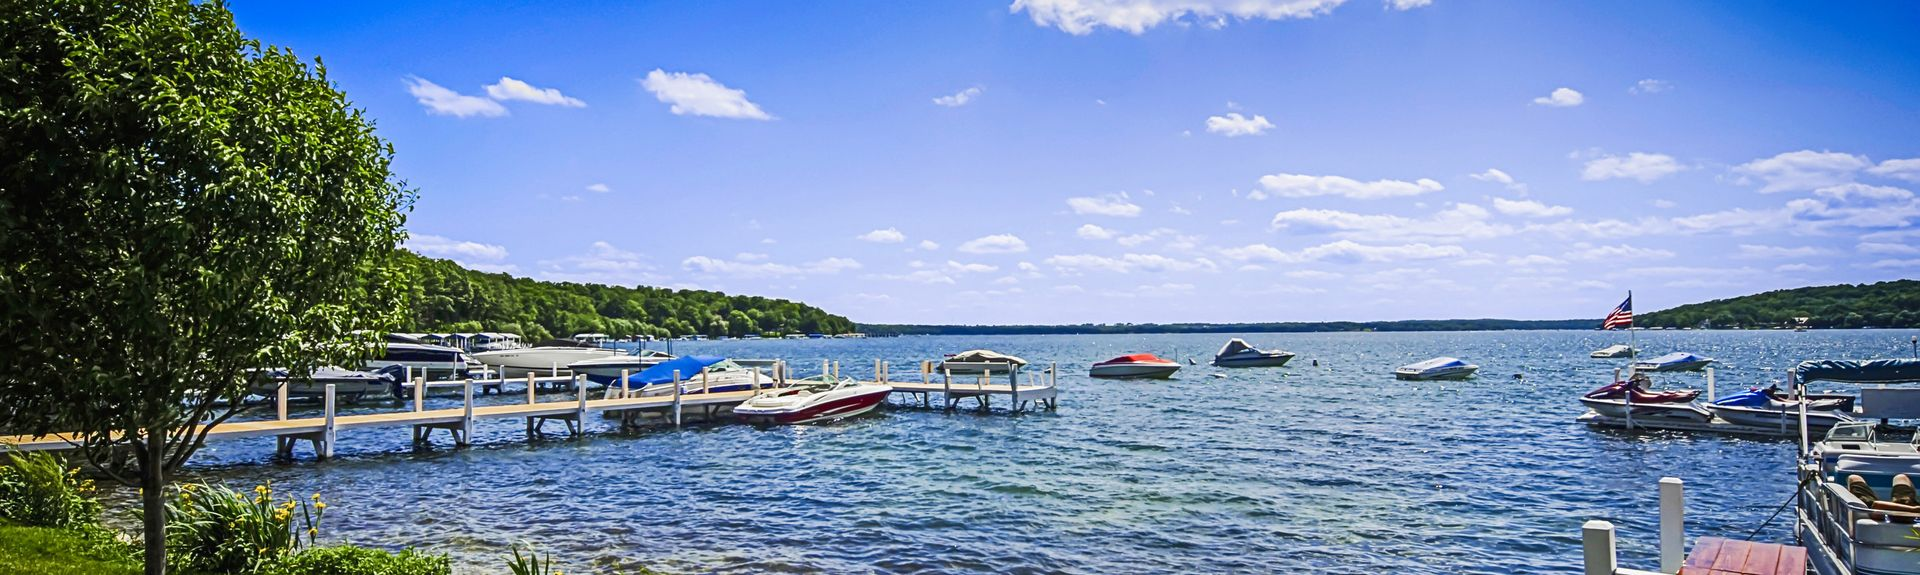 Lake Geneva Wi Vacation Rentals House Rentals More Vrbo Vrbo rental from mapcarta, the free map. lake geneva wi vacation rentals house